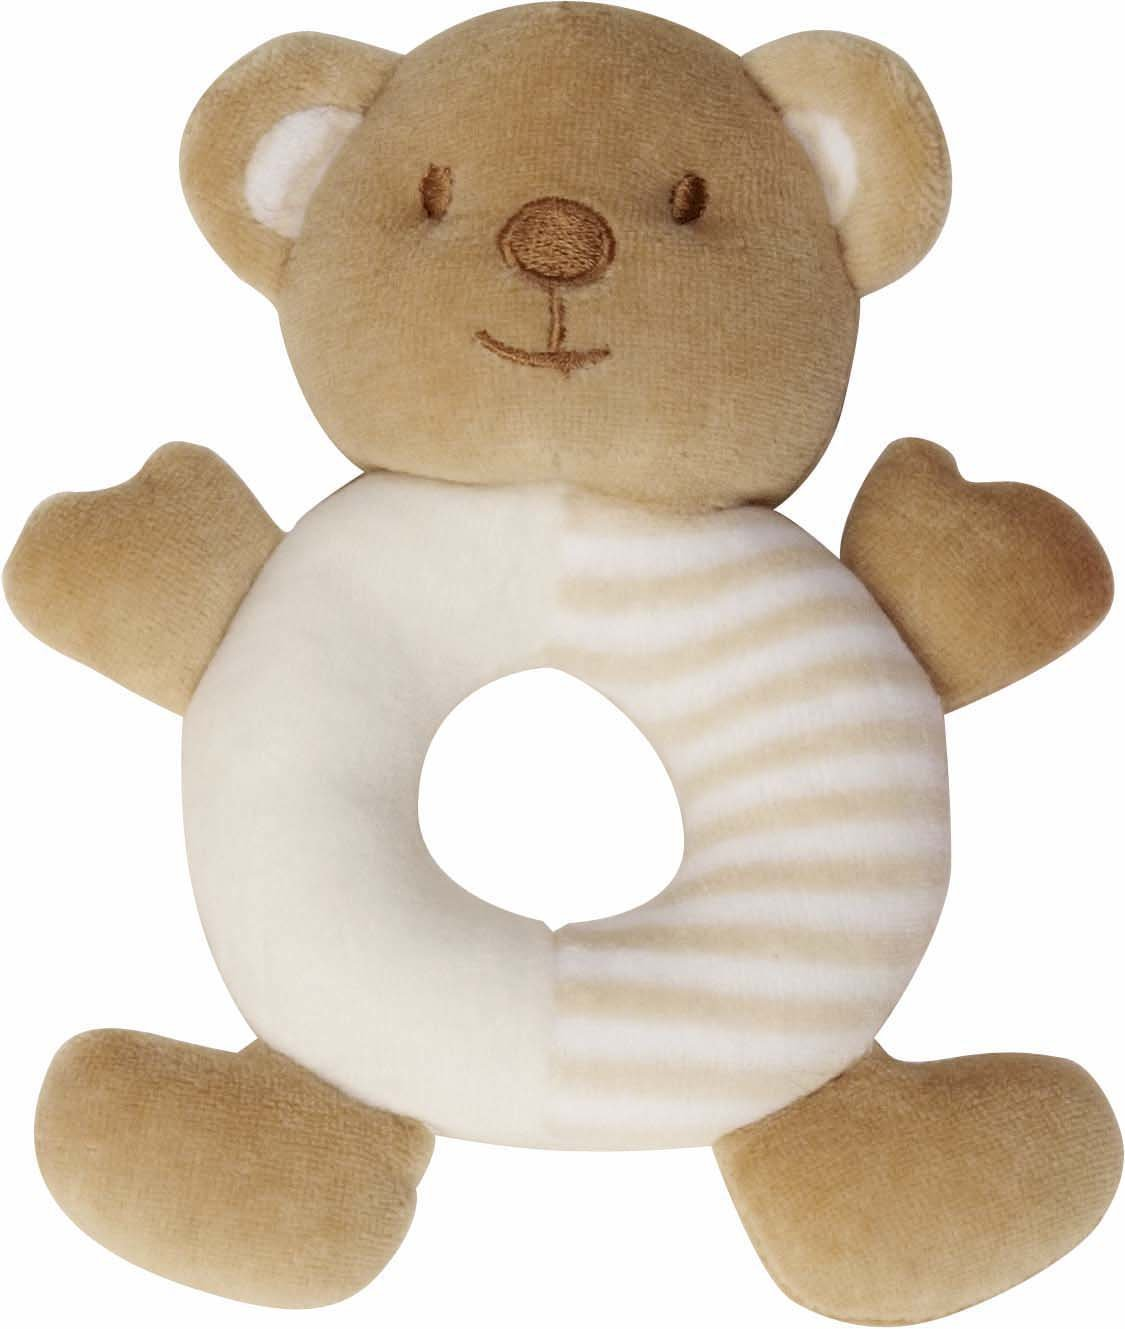 Playshoes 305133 Baby Rattle Bear by BabyMarket